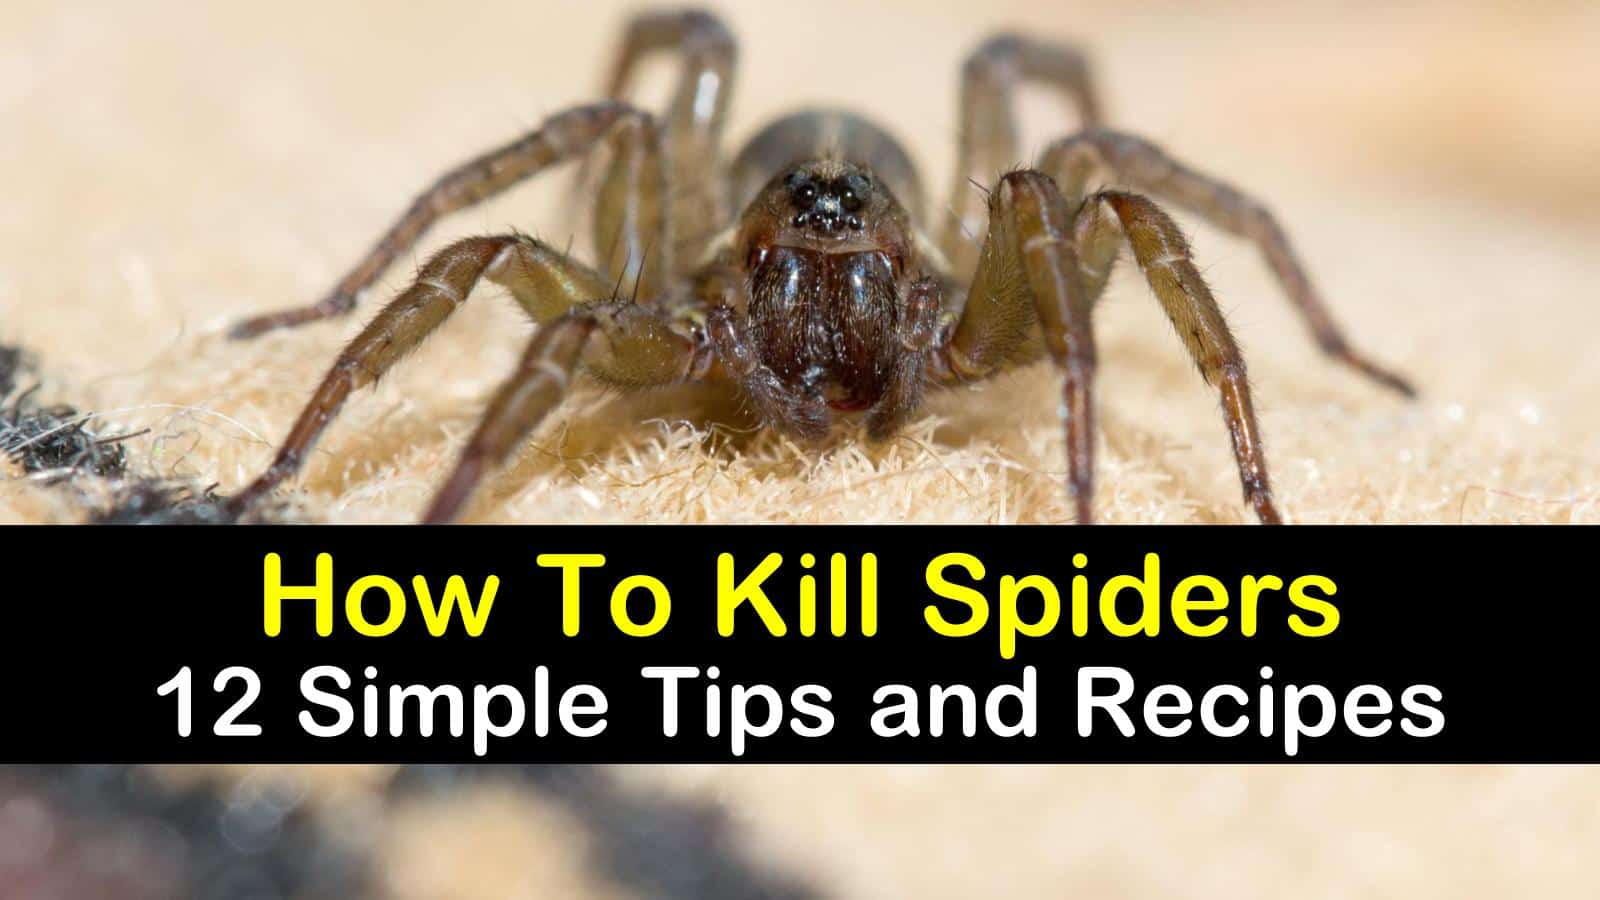 how to kill spiders titleimg1